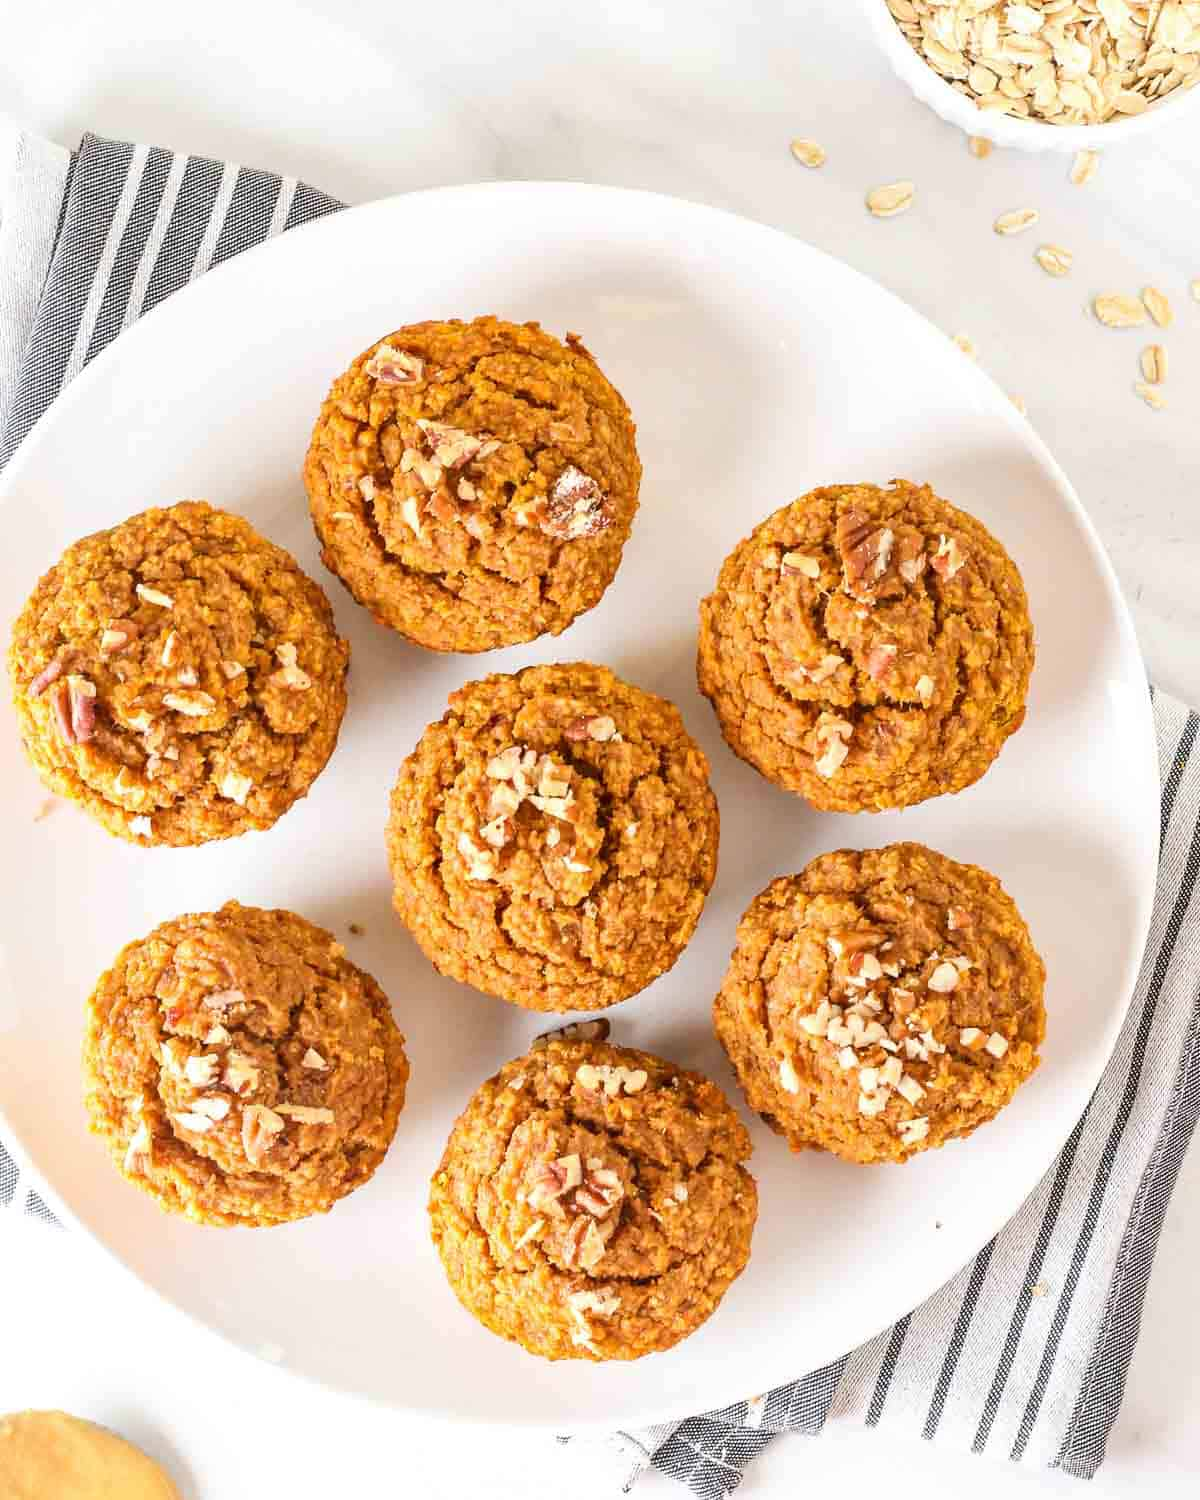 7 sweet potato muffins on a white plate on a table cloth.